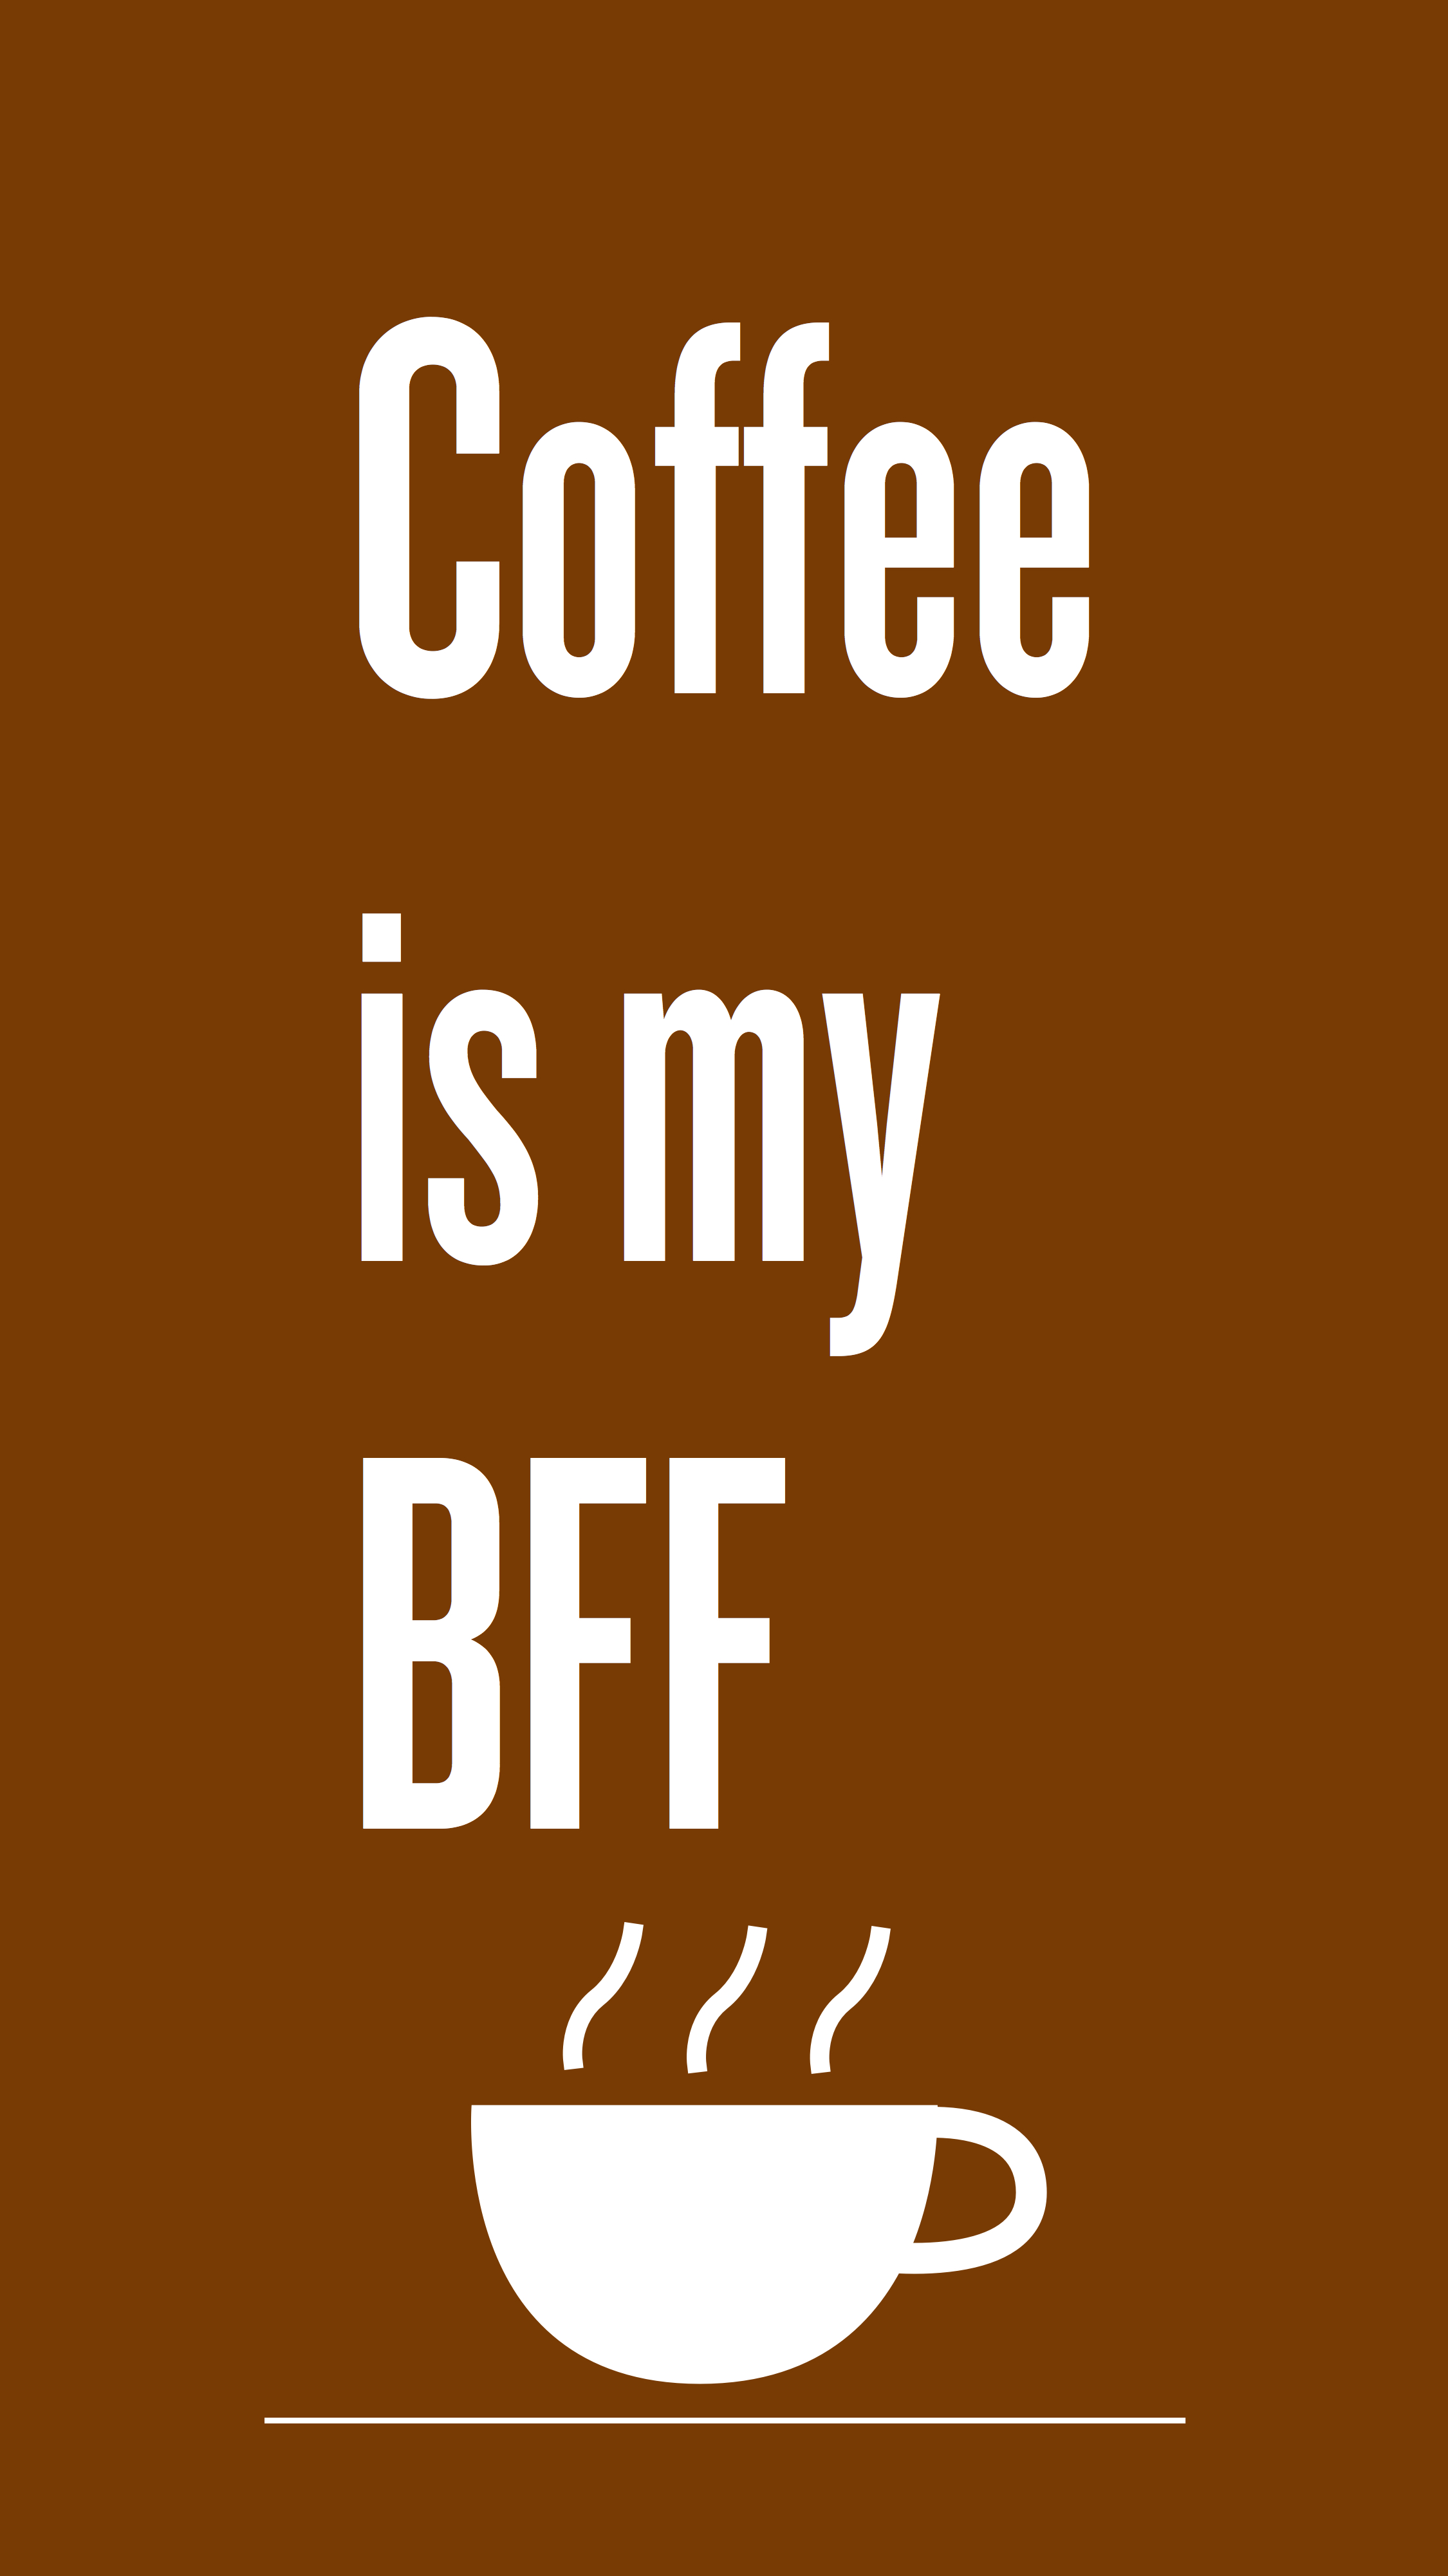 beyond the bean iphone 6 coffee wallpapers royal cup coffee